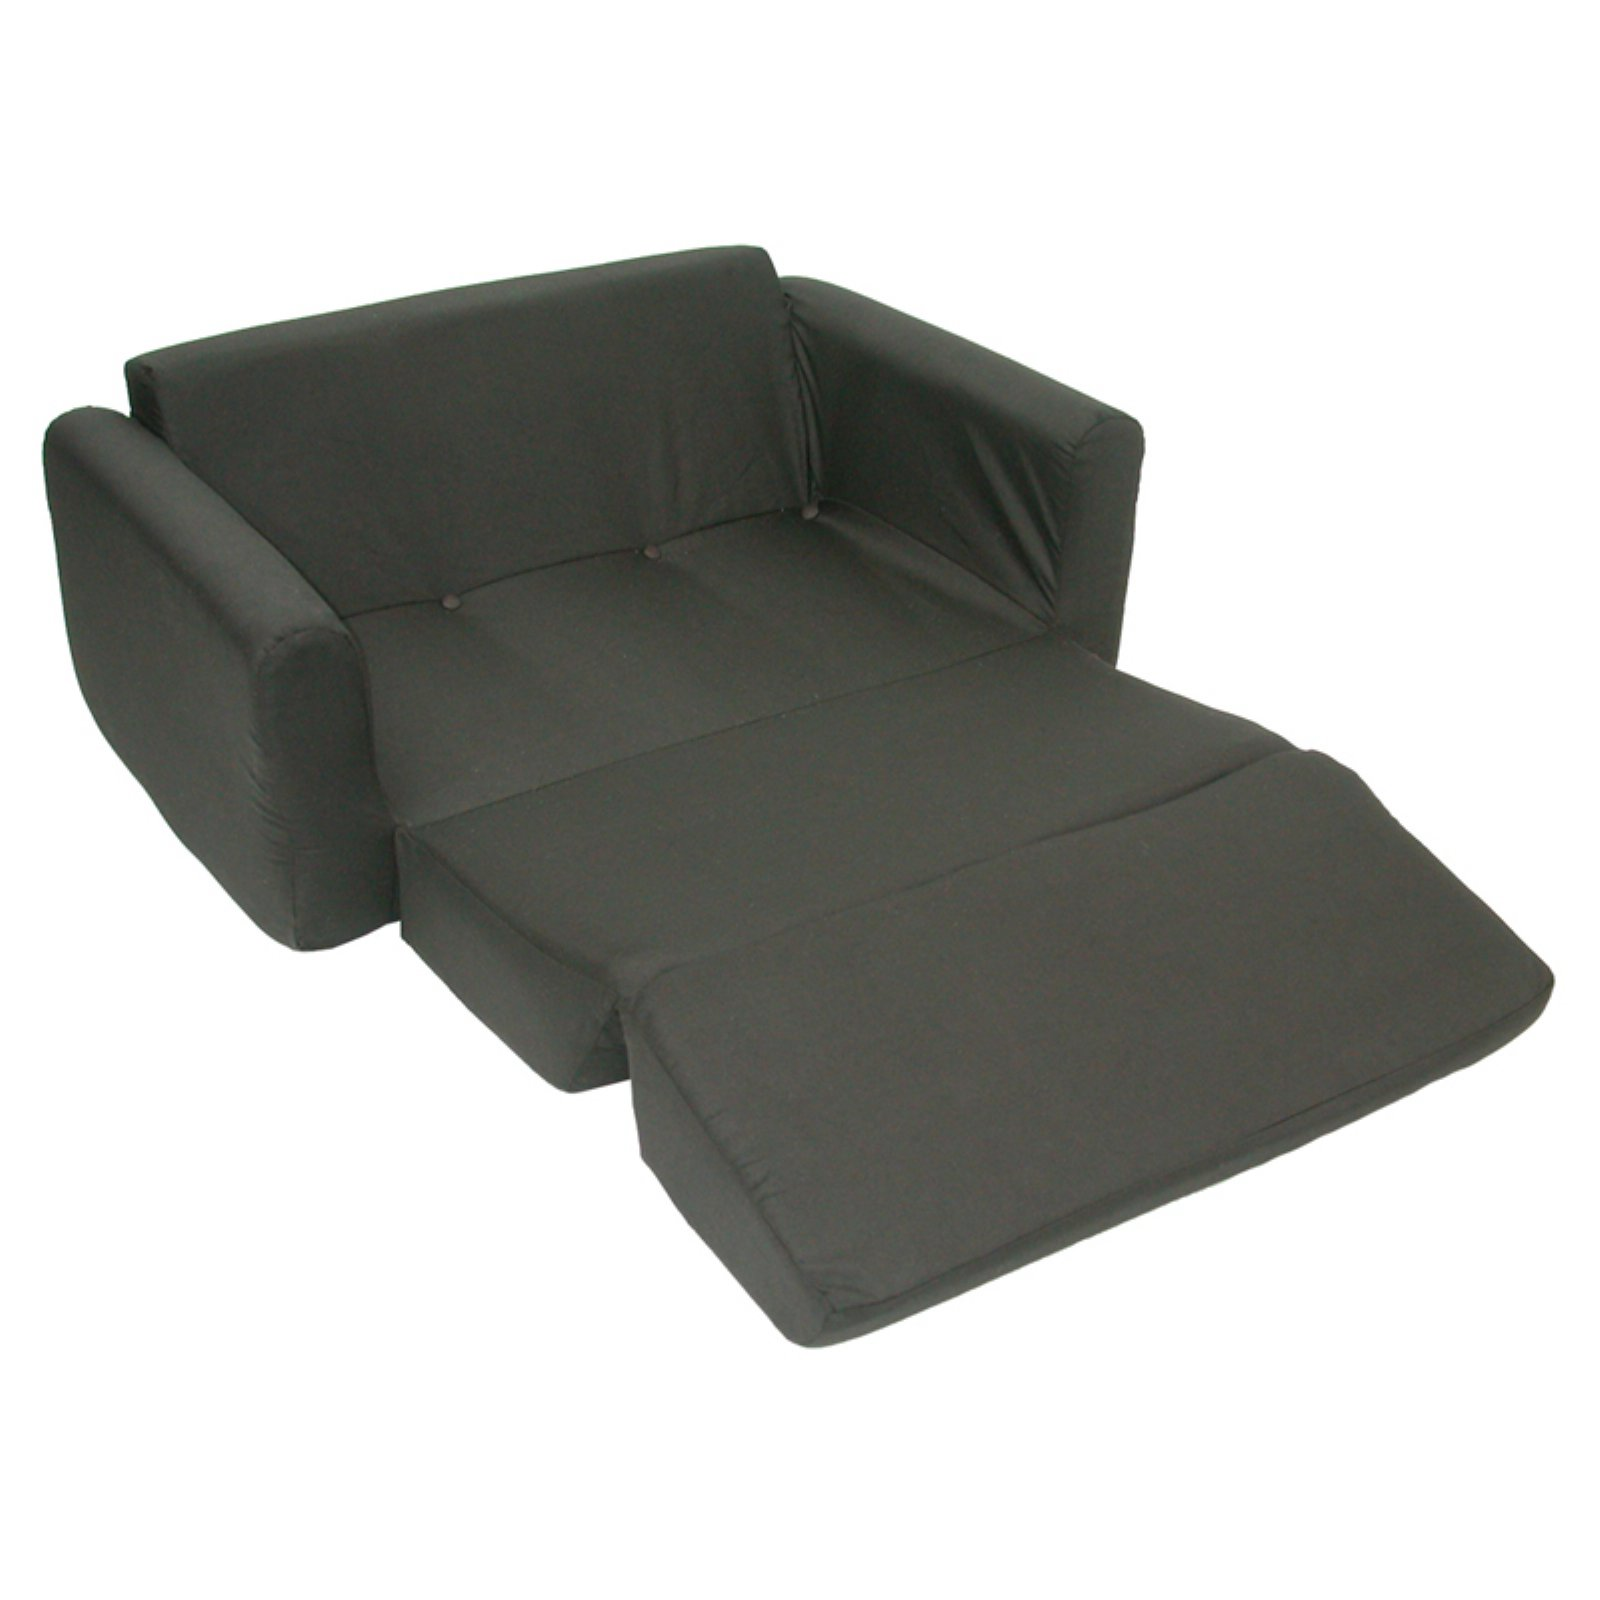 Kids Sofa Sleeper, Black - Walmart.com